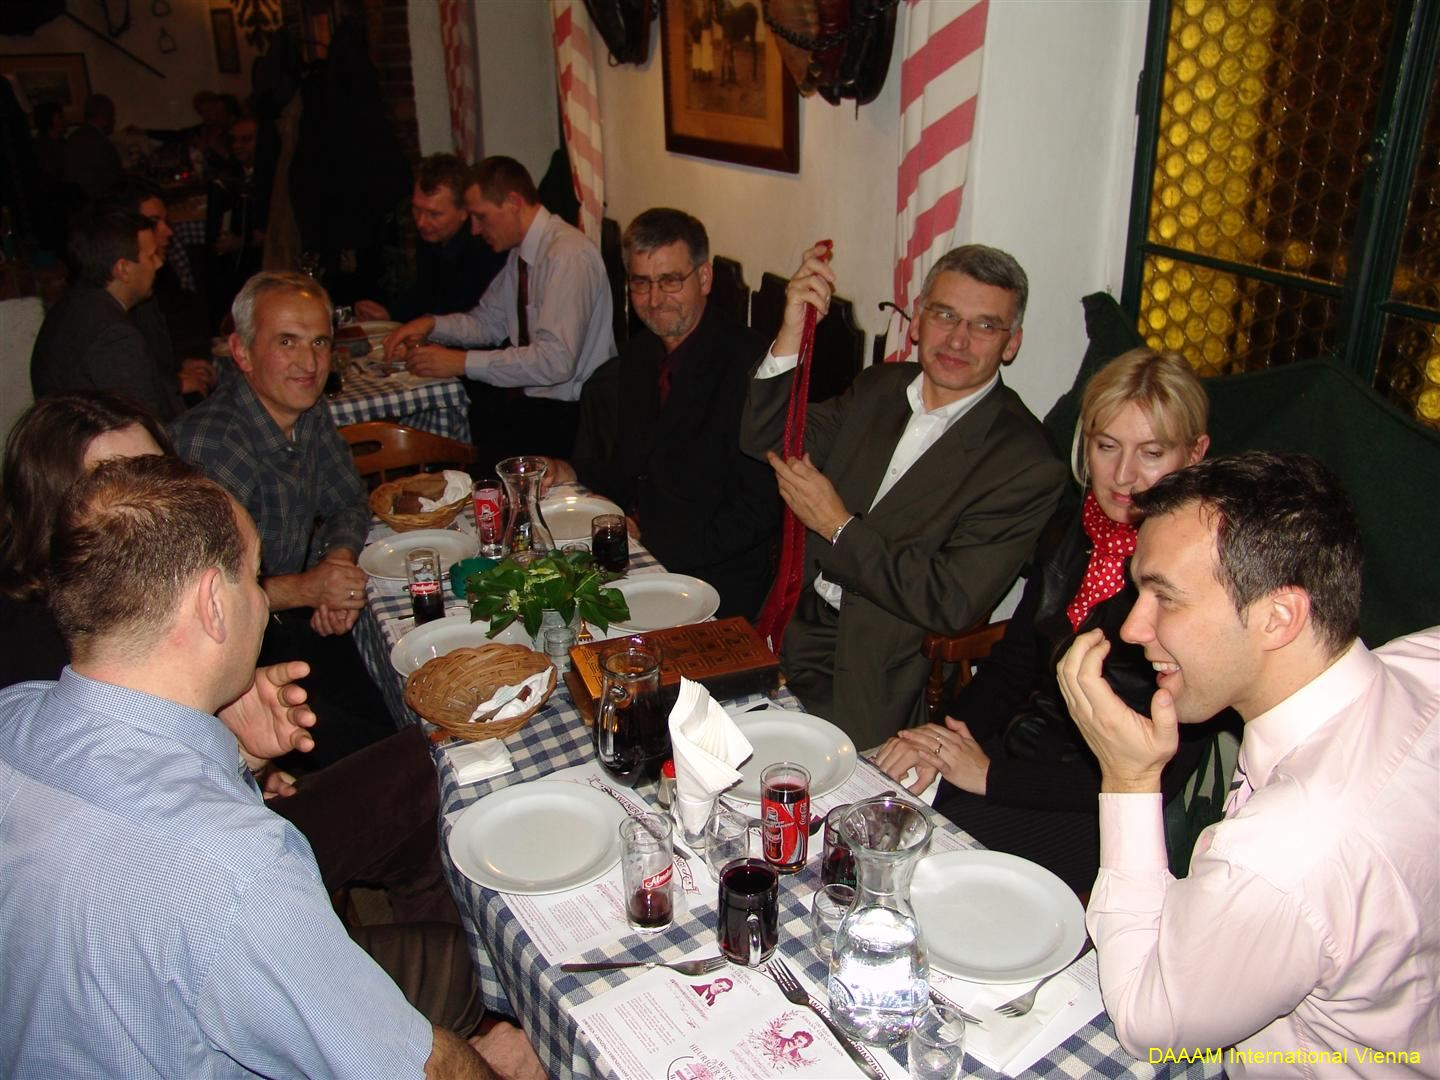 daaam_2006_vienna_dinner_recognitions_lectures_028